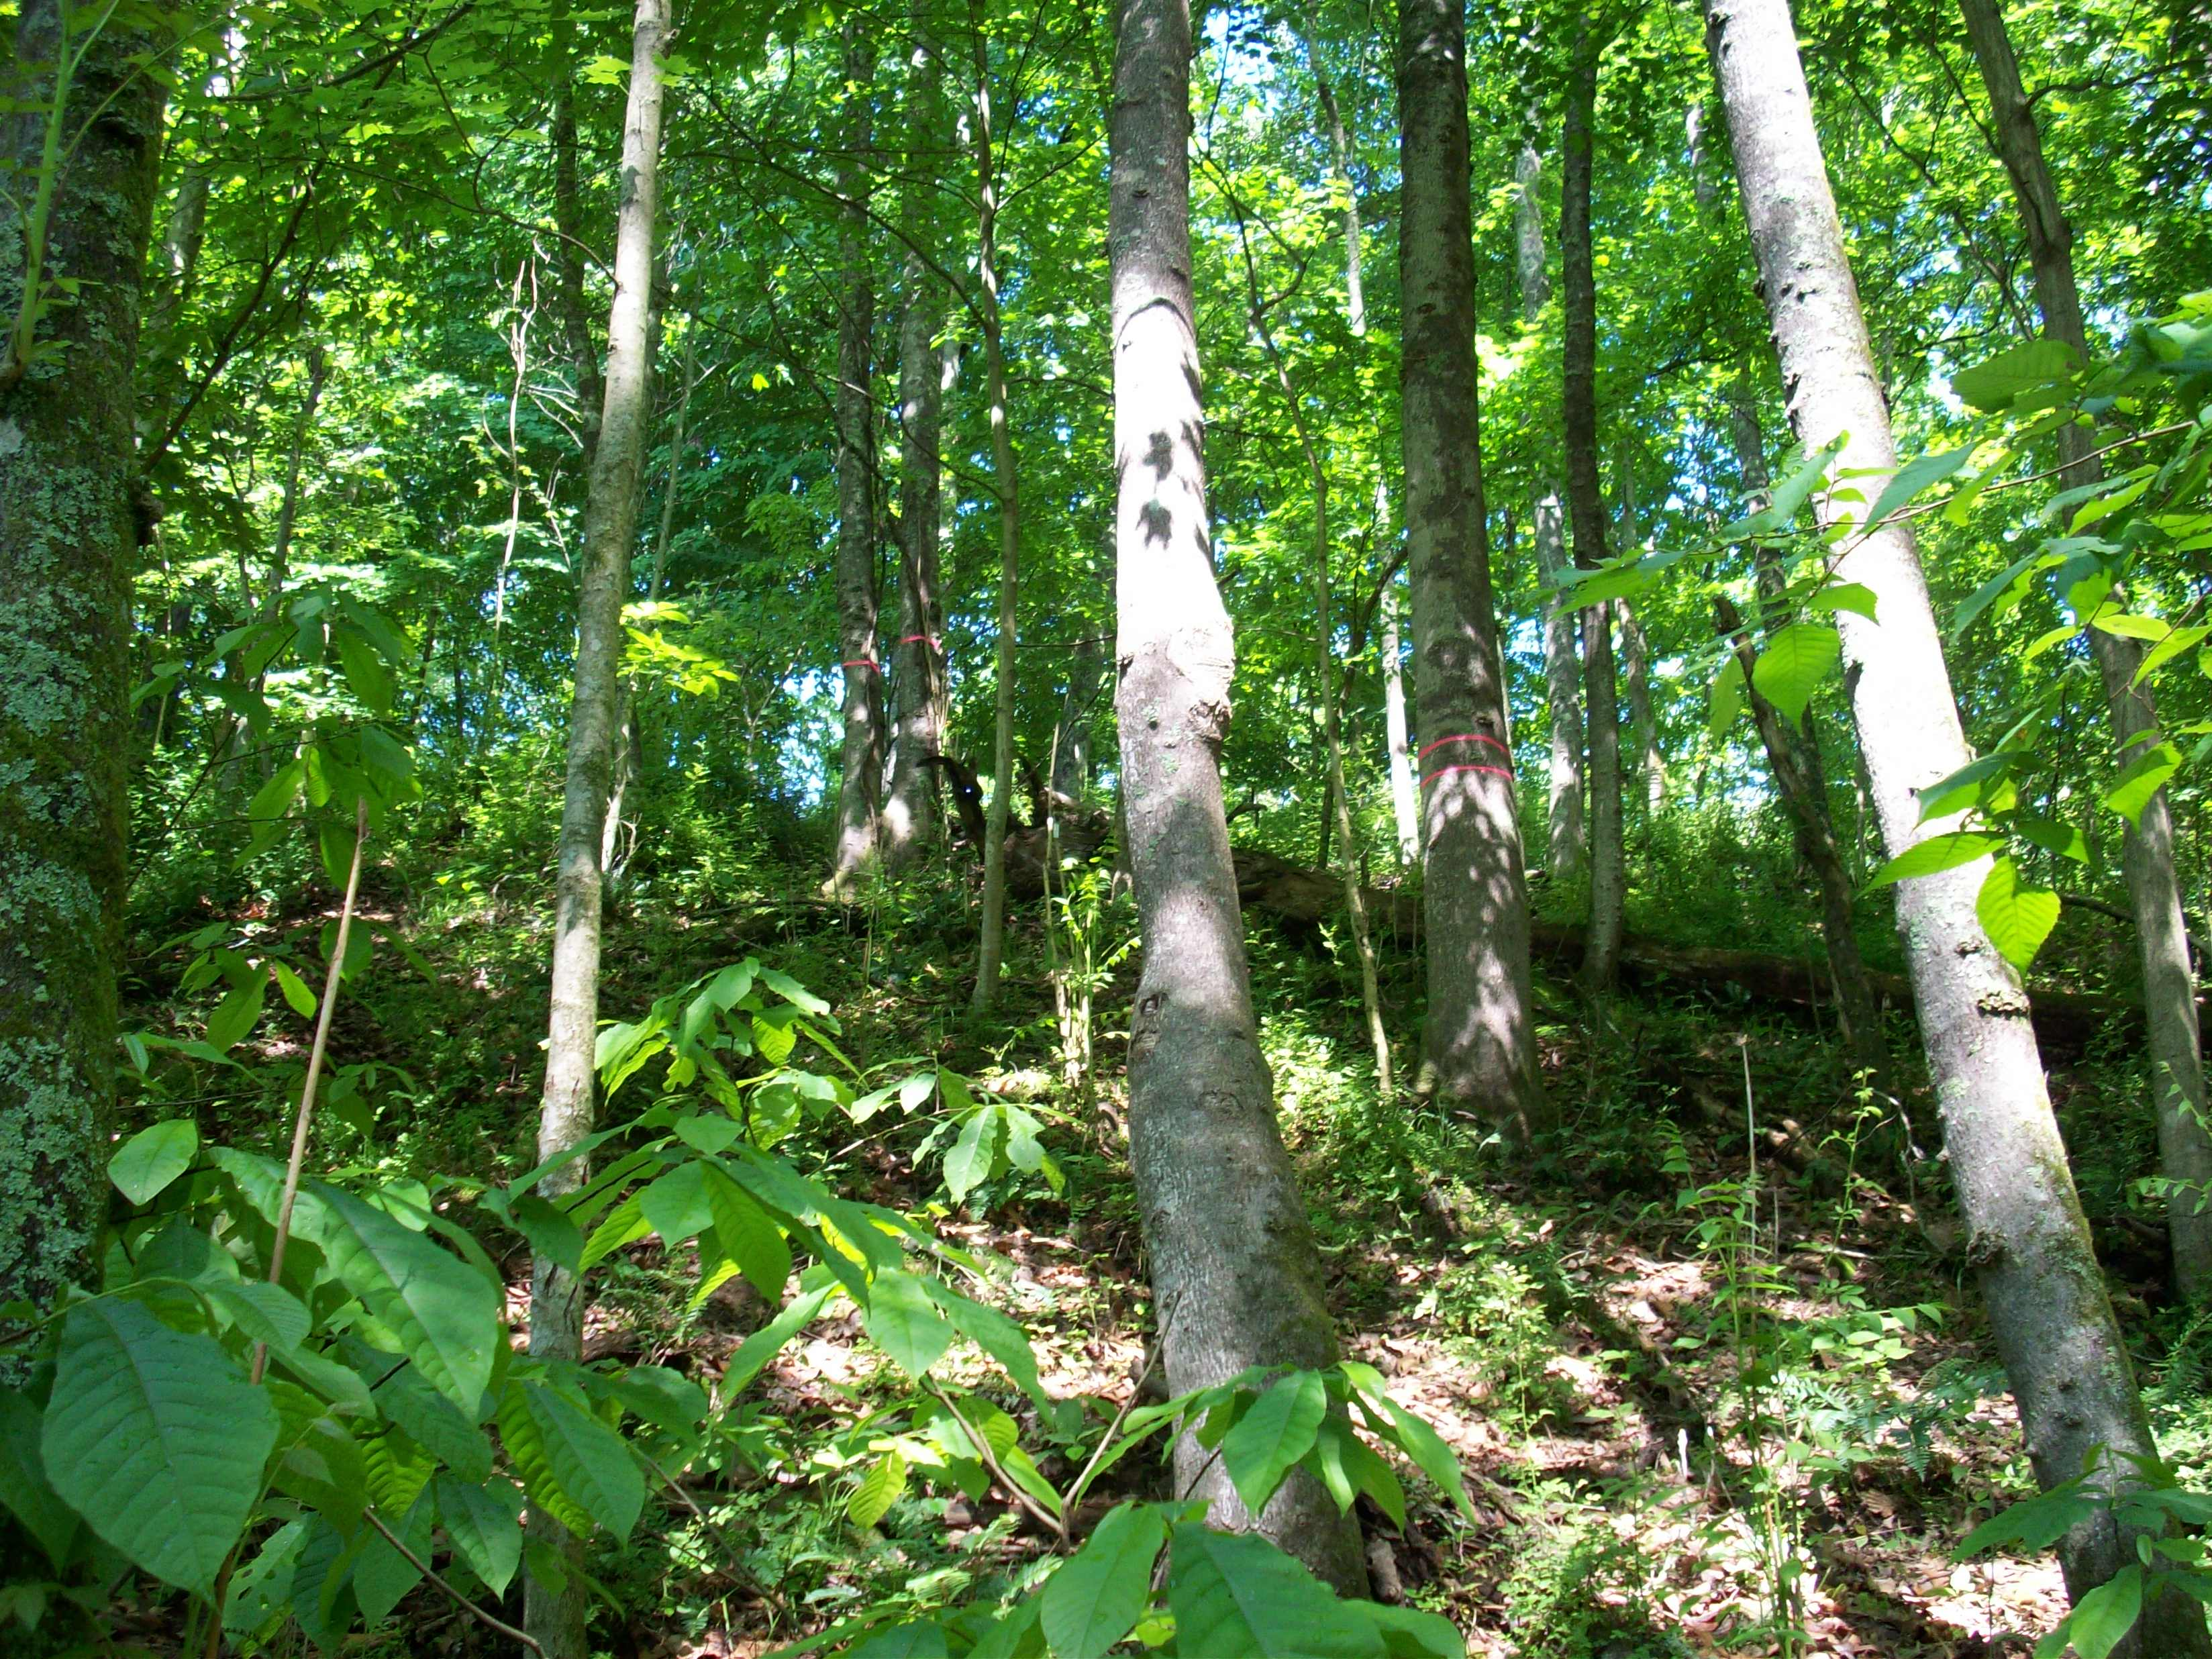 A pure stand of tree-of-heaven in a natural forest in West Virginia